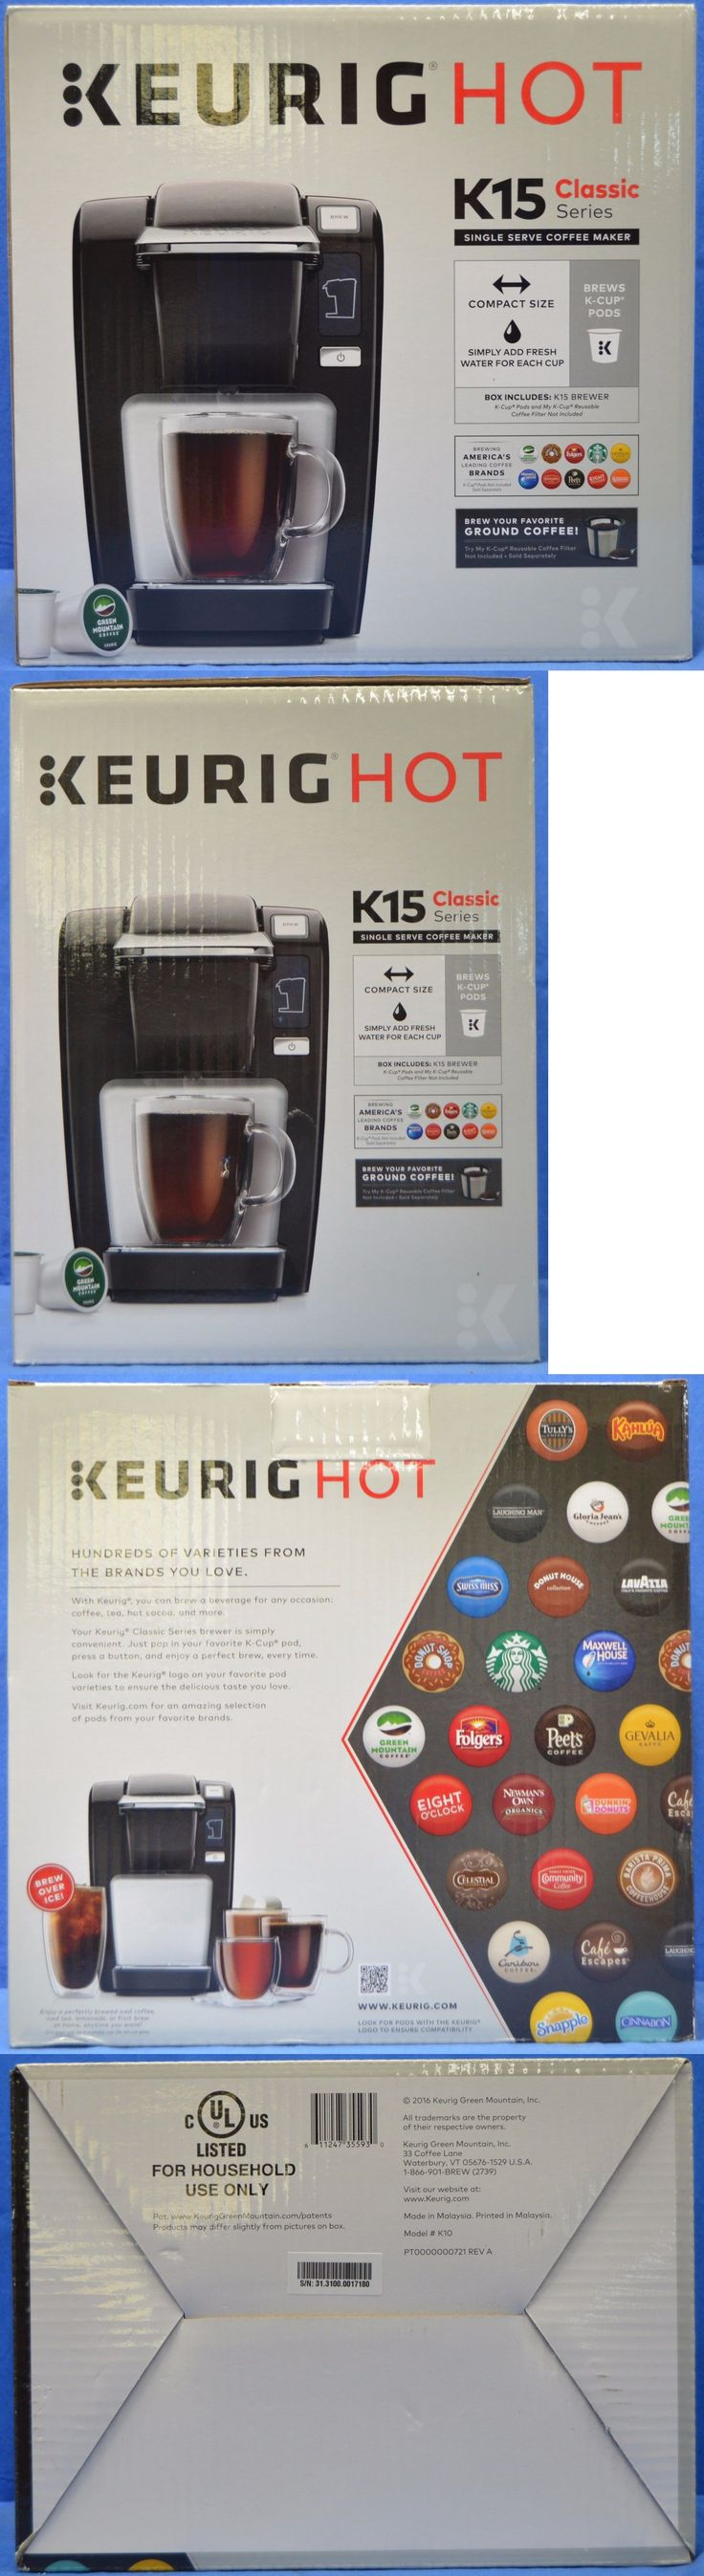 Other Coffee and Tea Makers 159902: New Keurig Hot K15 Classic Series Single Serve Coffee Maker Black Model #K10 -> BUY IT NOW ONLY: $53.95 on eBay!